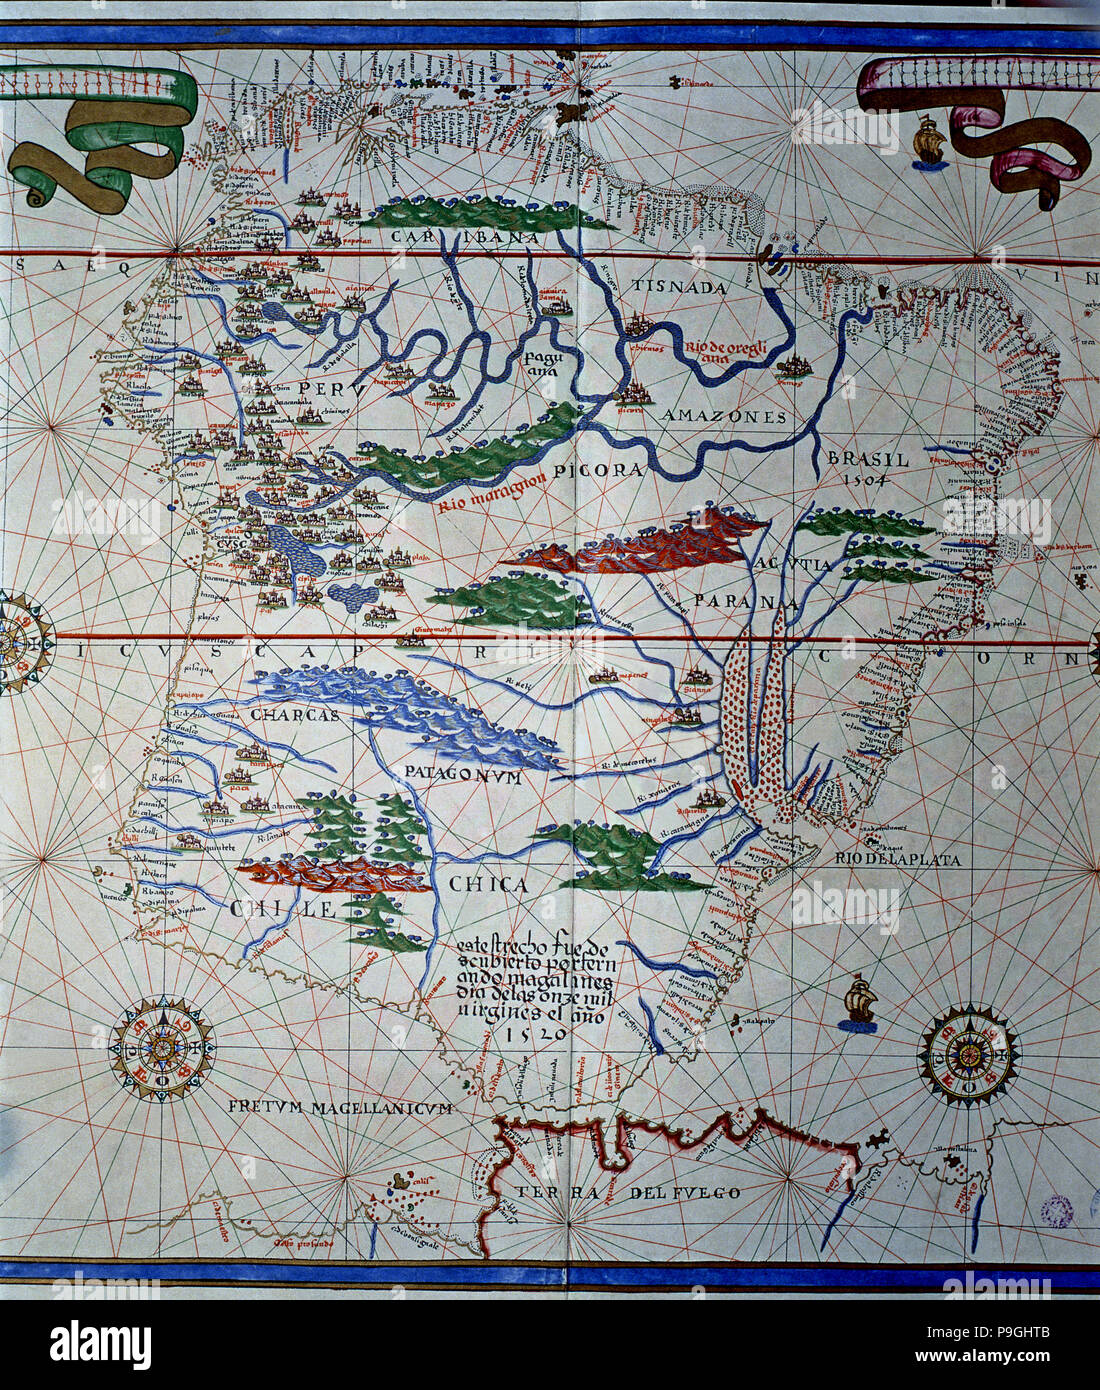 Atlas of Joan Martines, Messina, 1582. Portulan chart of South America, from Panama to Tierra del… Stock Photo